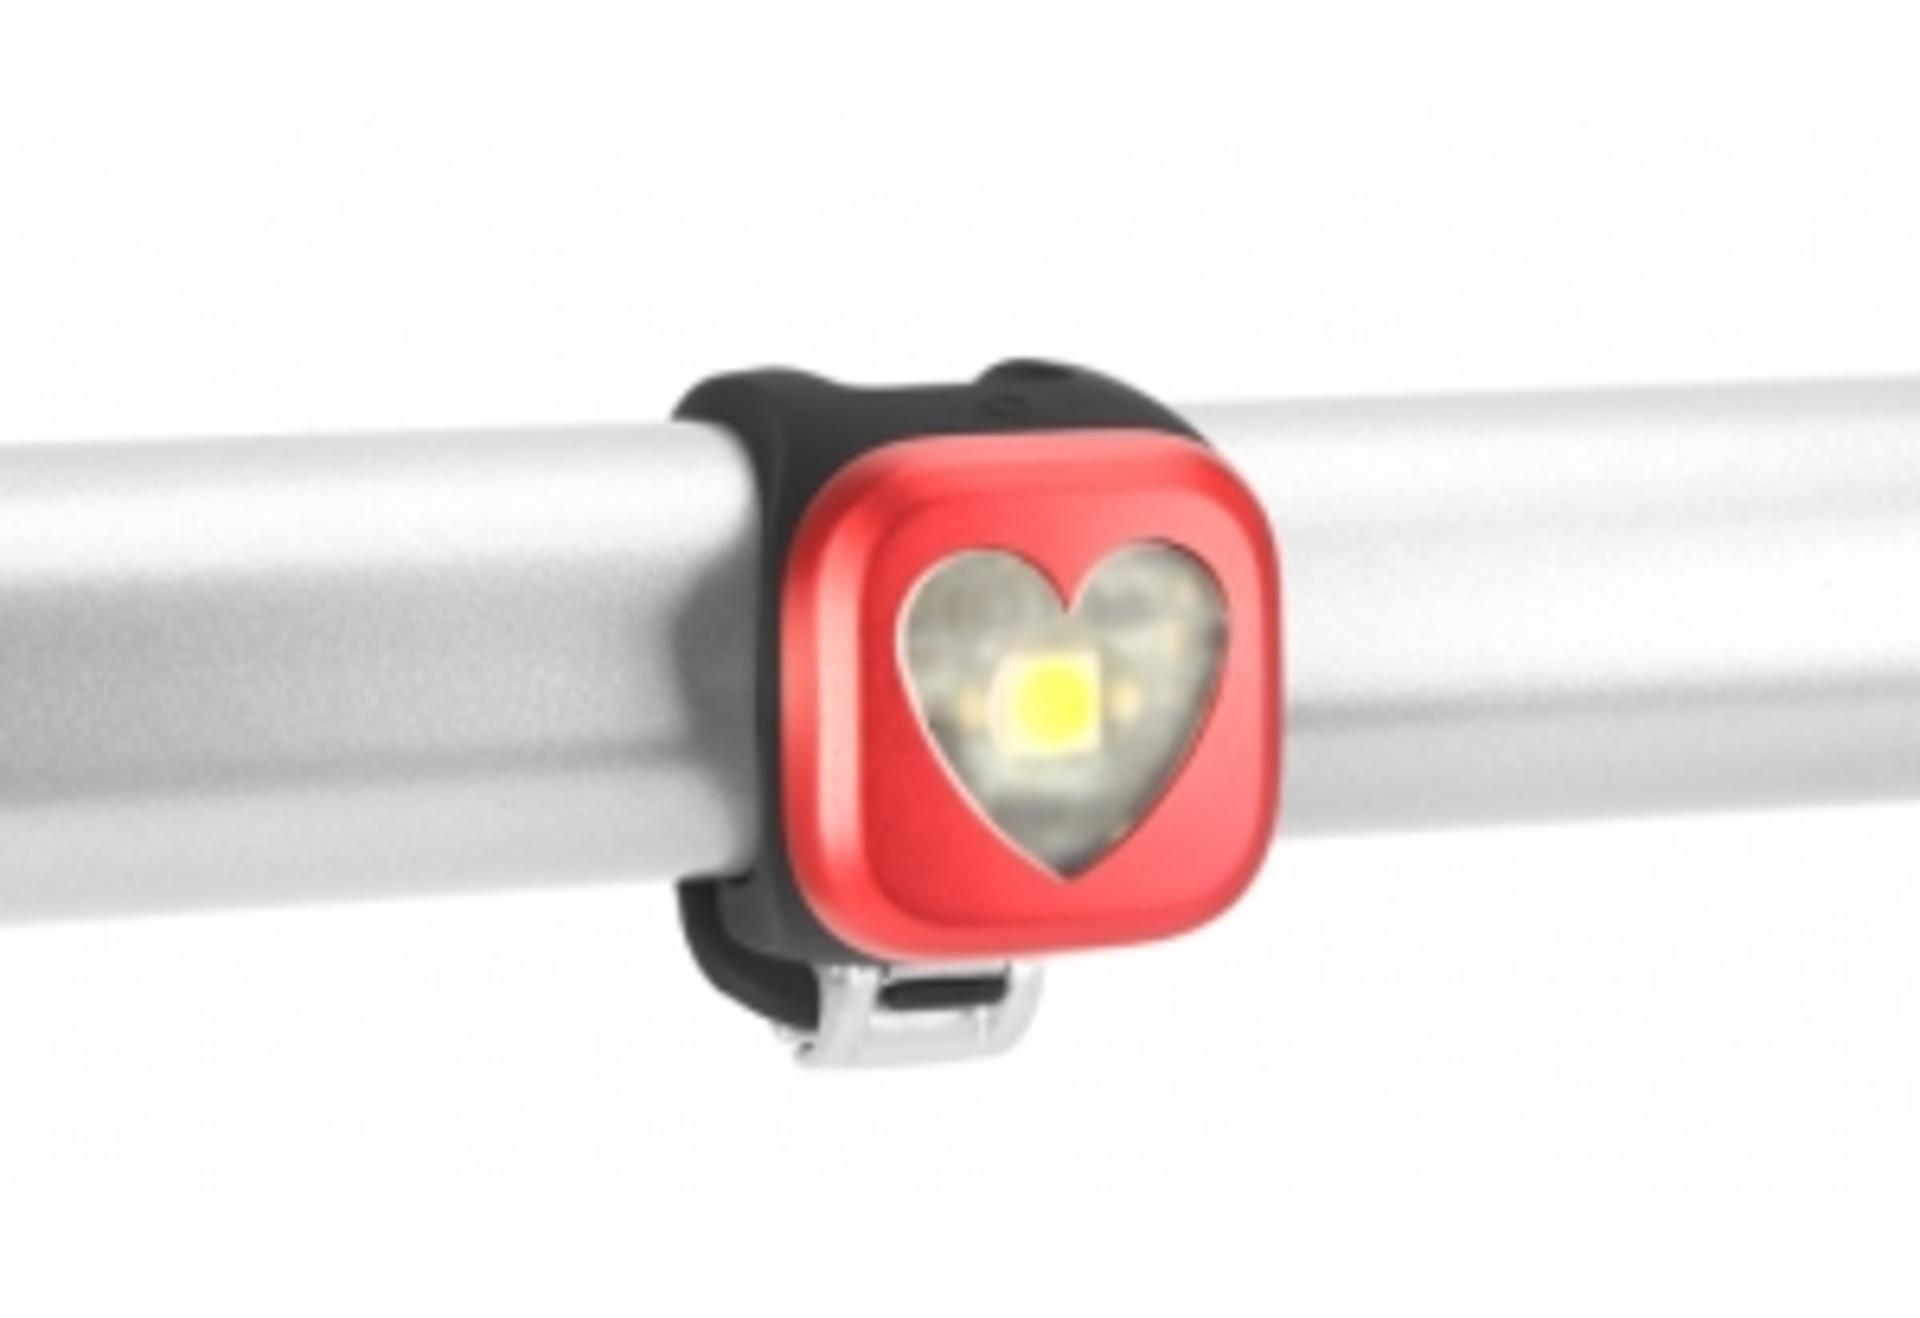 Luce Knog Blinder 1 Heart Rosso - Anteriore - Ricaricabile